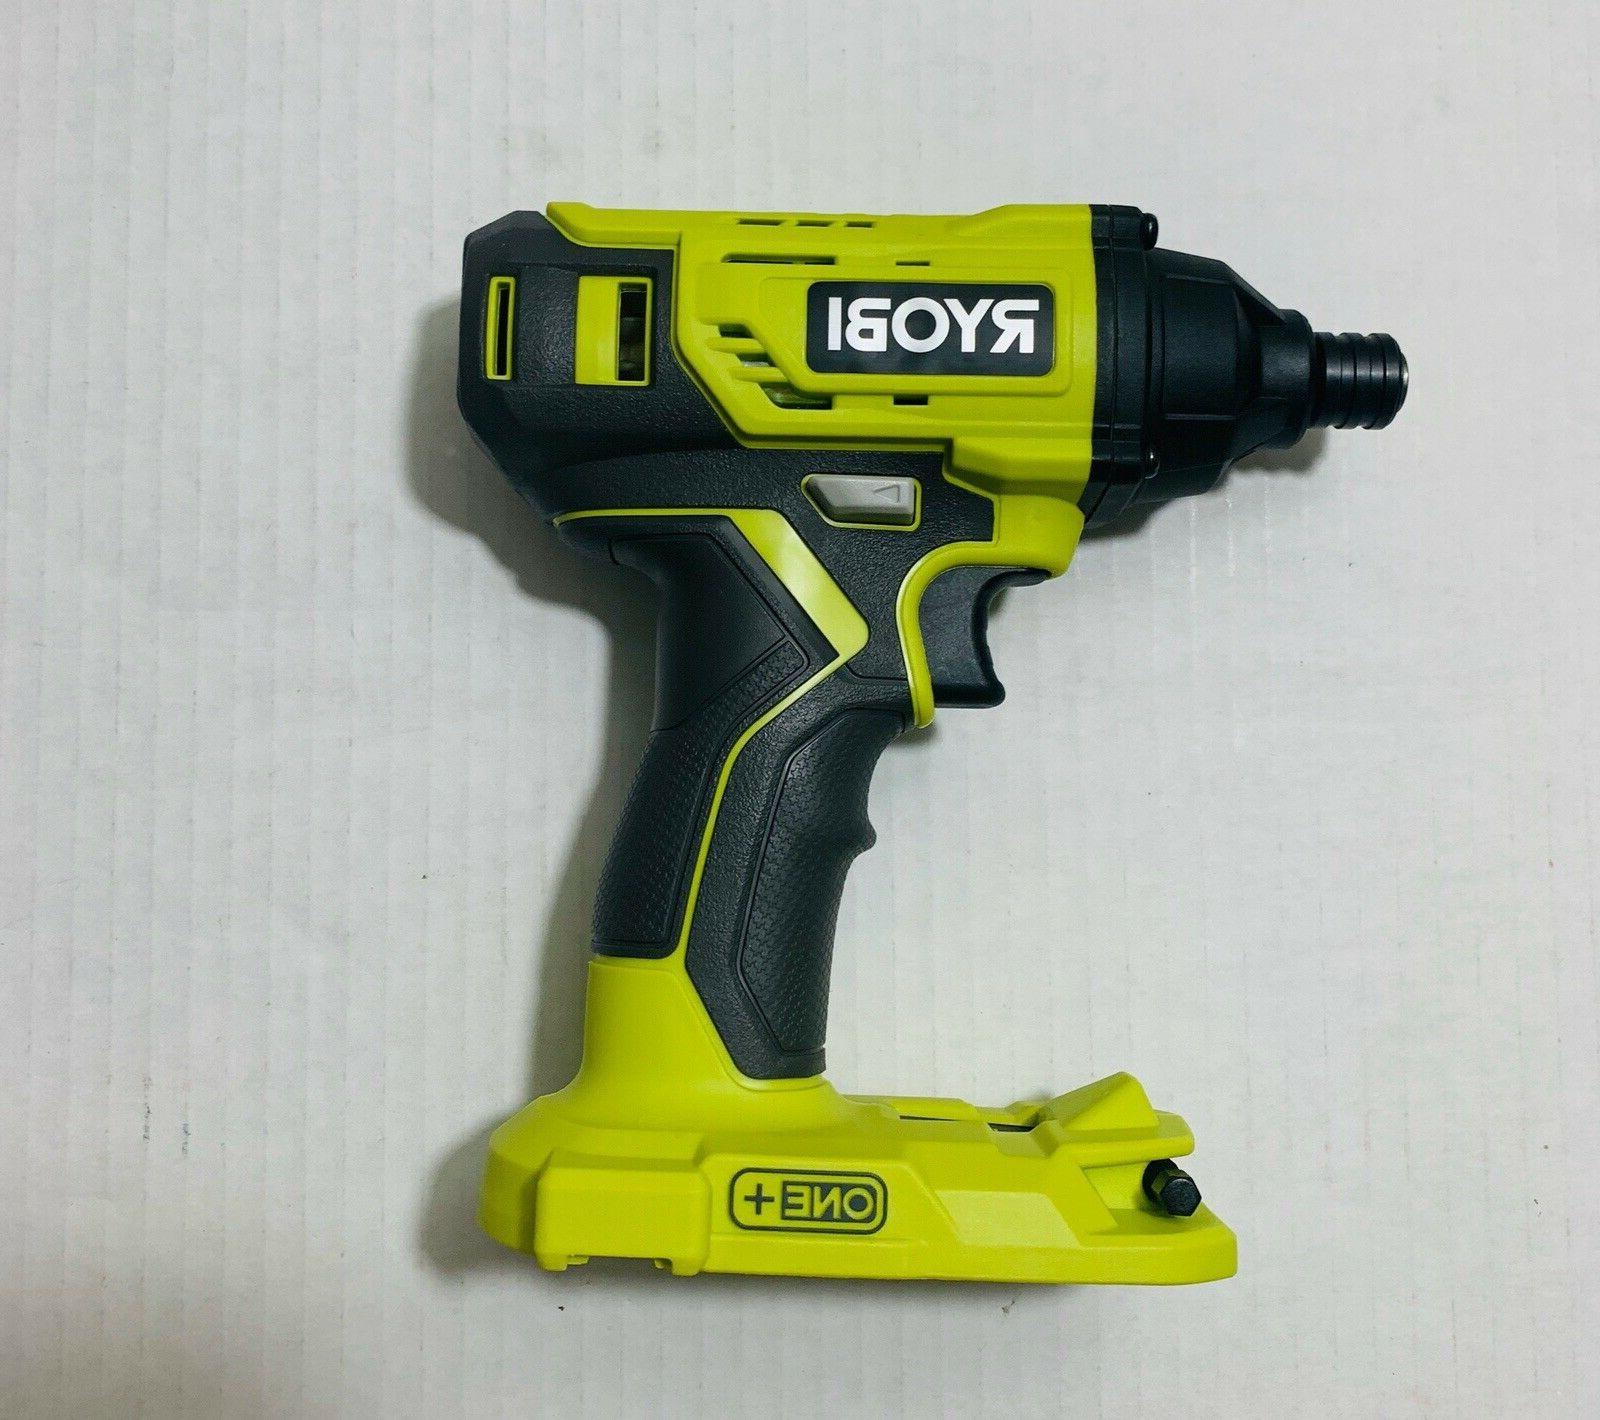 New ONE+ Impact with bit P235A, new upgrade from